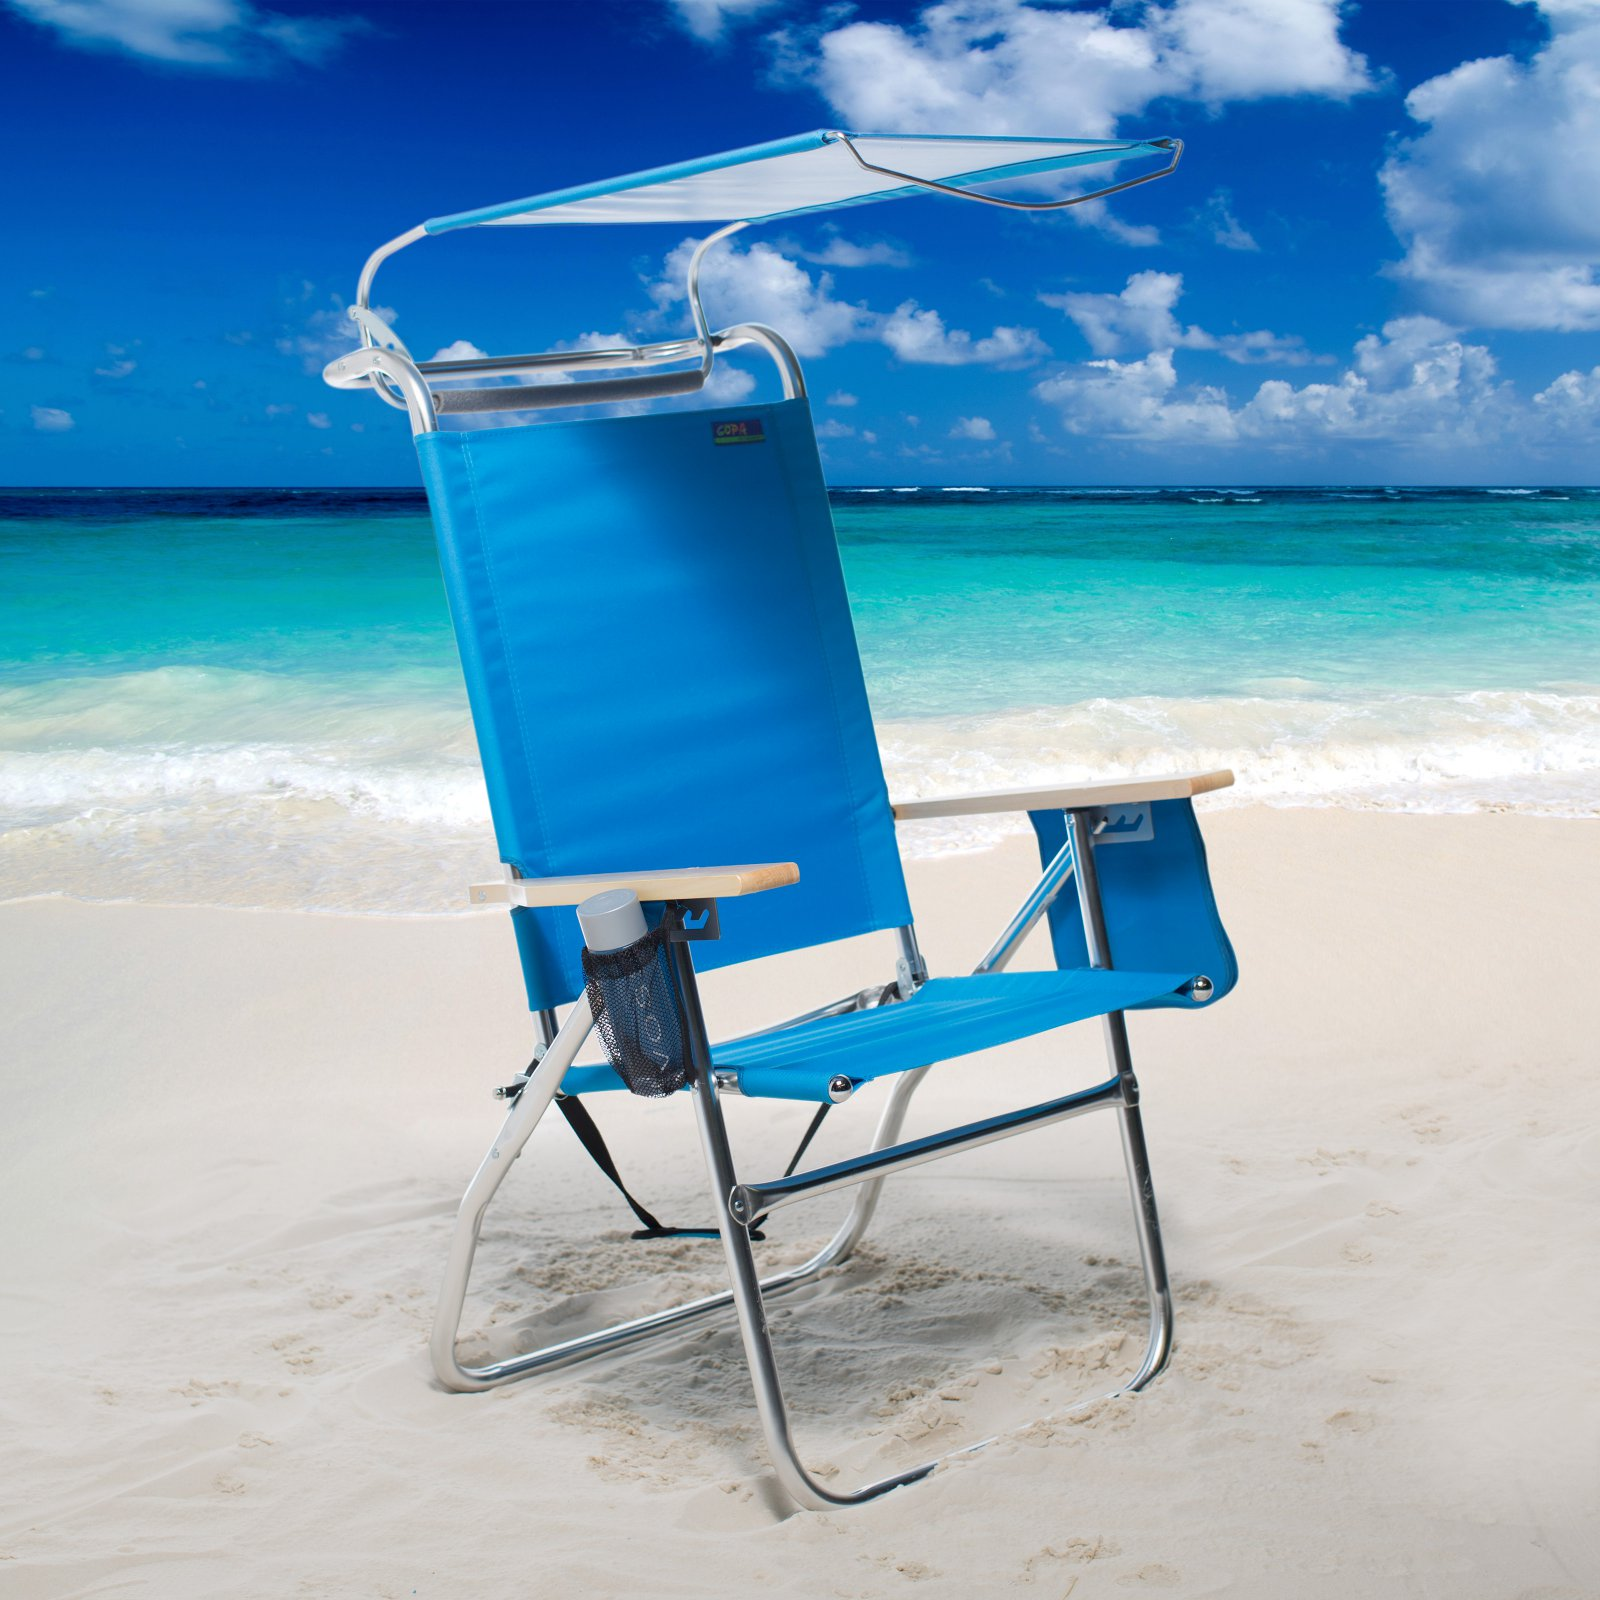 Copa 4 Position Big Tycoon Canopy Beach Chair & Copa 4 Position Big Tycoon Canopy Beach Chair - Walmart.com